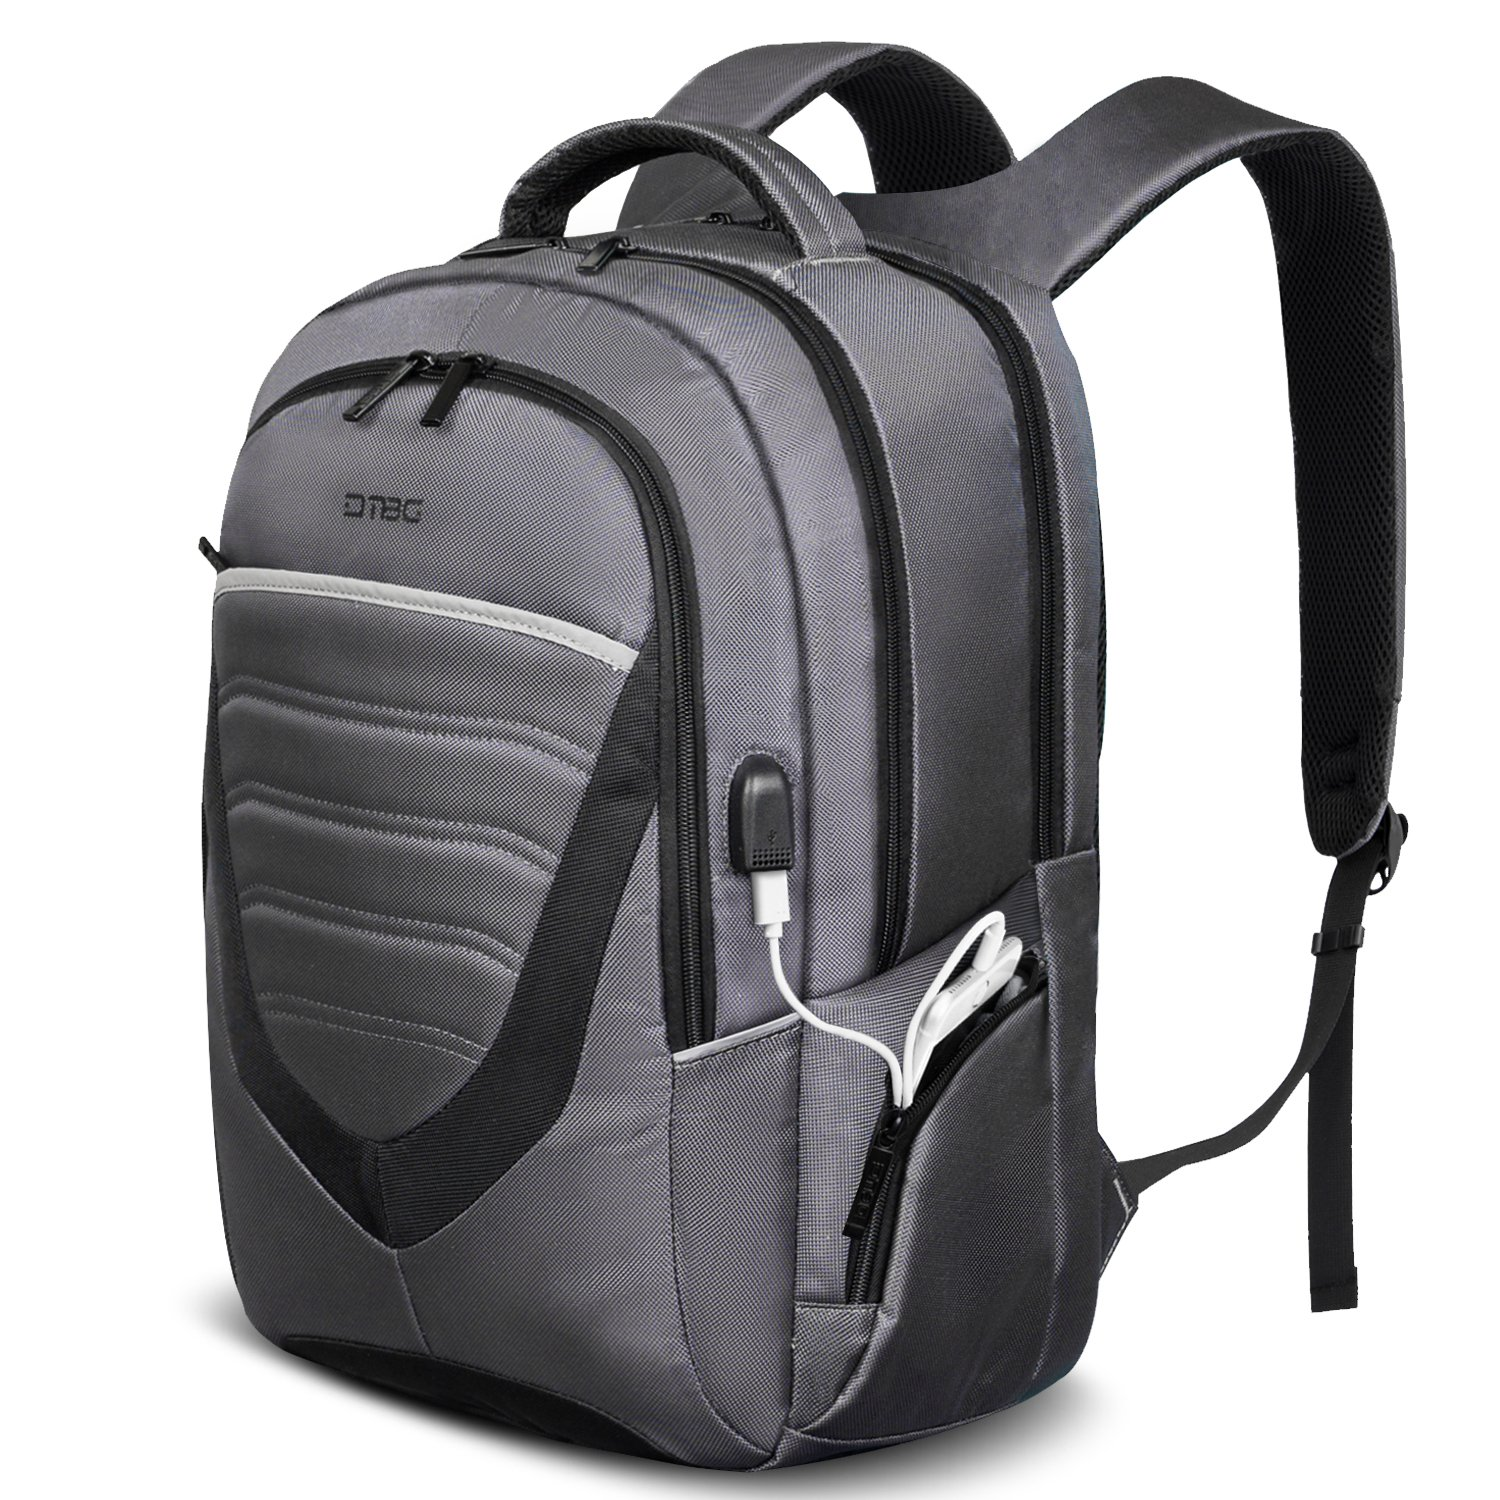 17.3 Inch Laptop Backpack with USB Charging Port,DTBG Durable Travel Business Backpack for Men / Women, College Daypack School Bag fits 17 - 17.3 Inch Laptop / Notebook / Macbook Computers,Grey